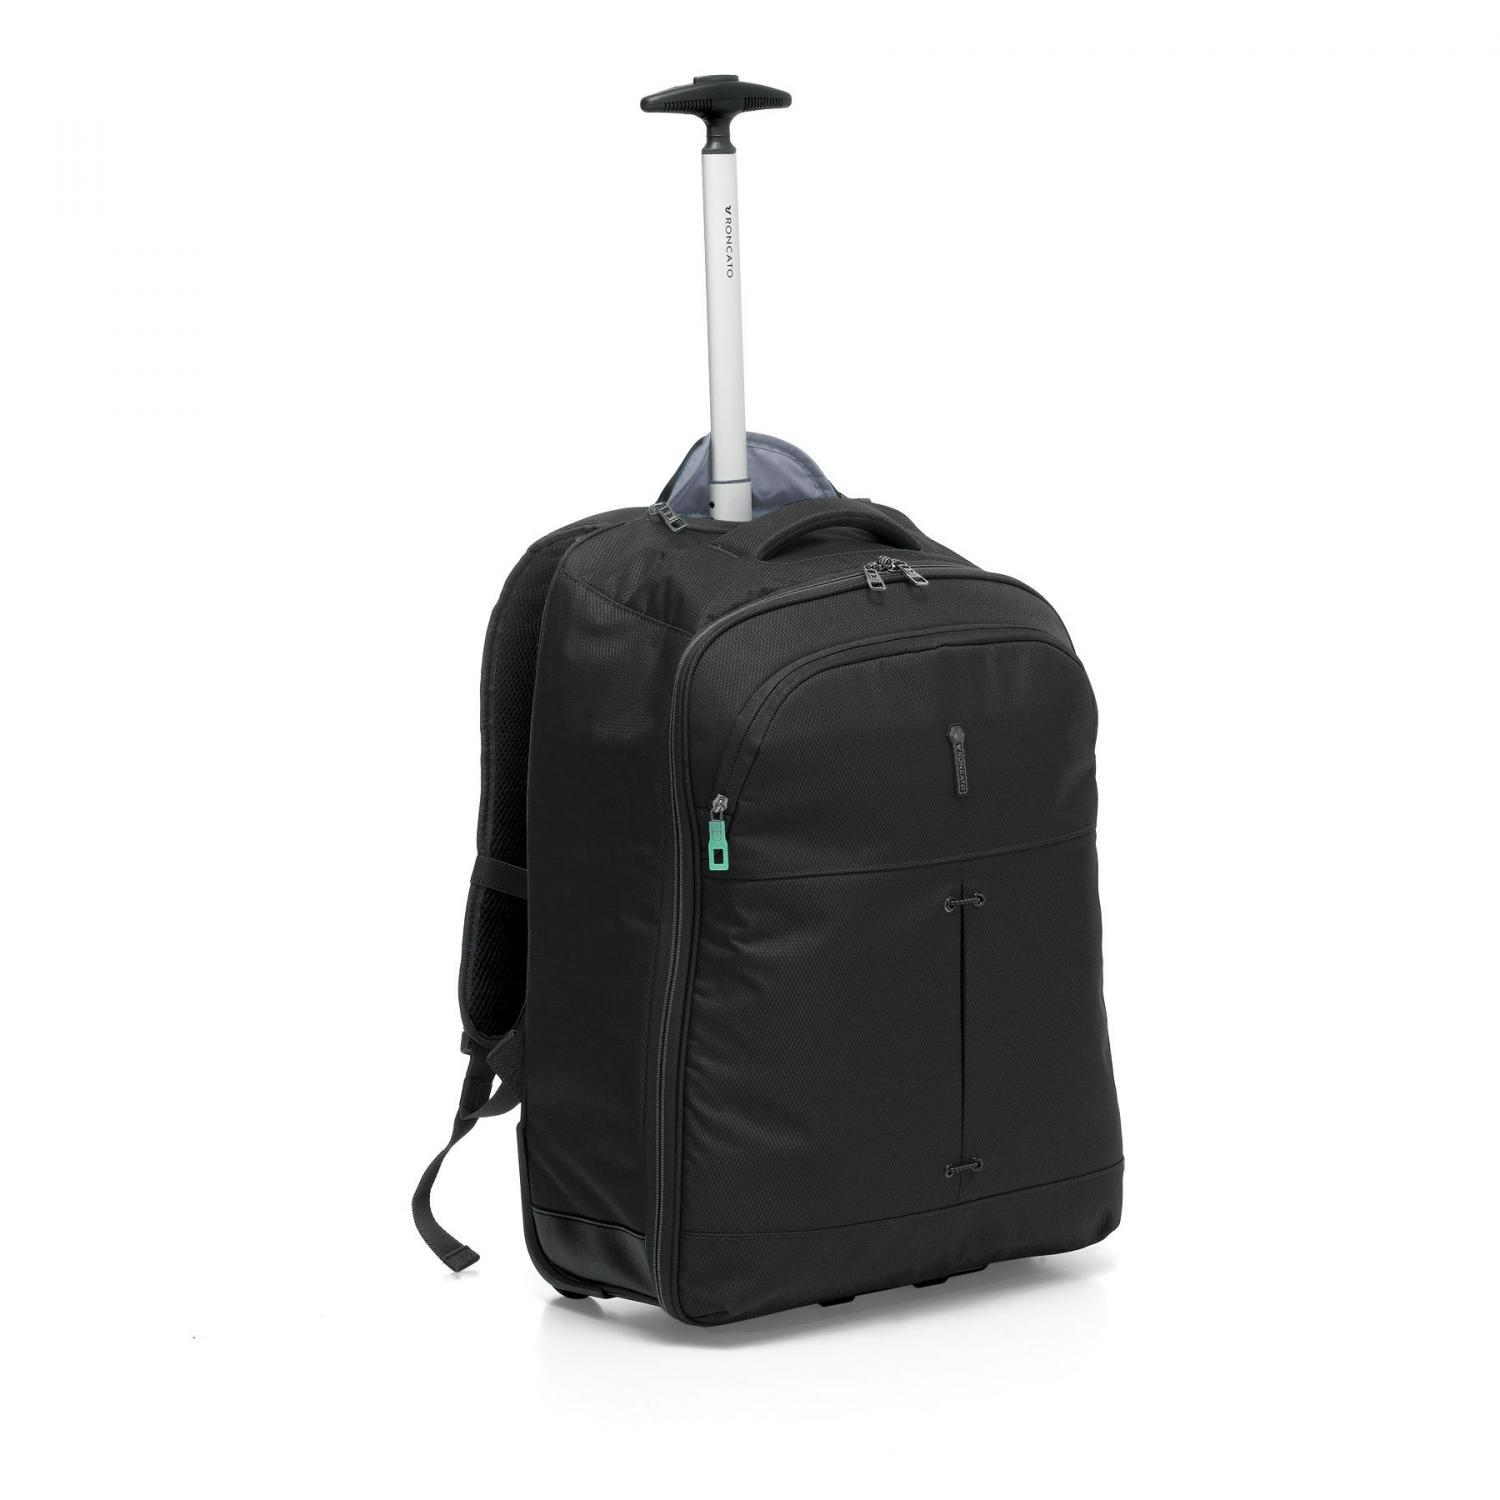 c4bbf87c30 Zaino Trolley Black